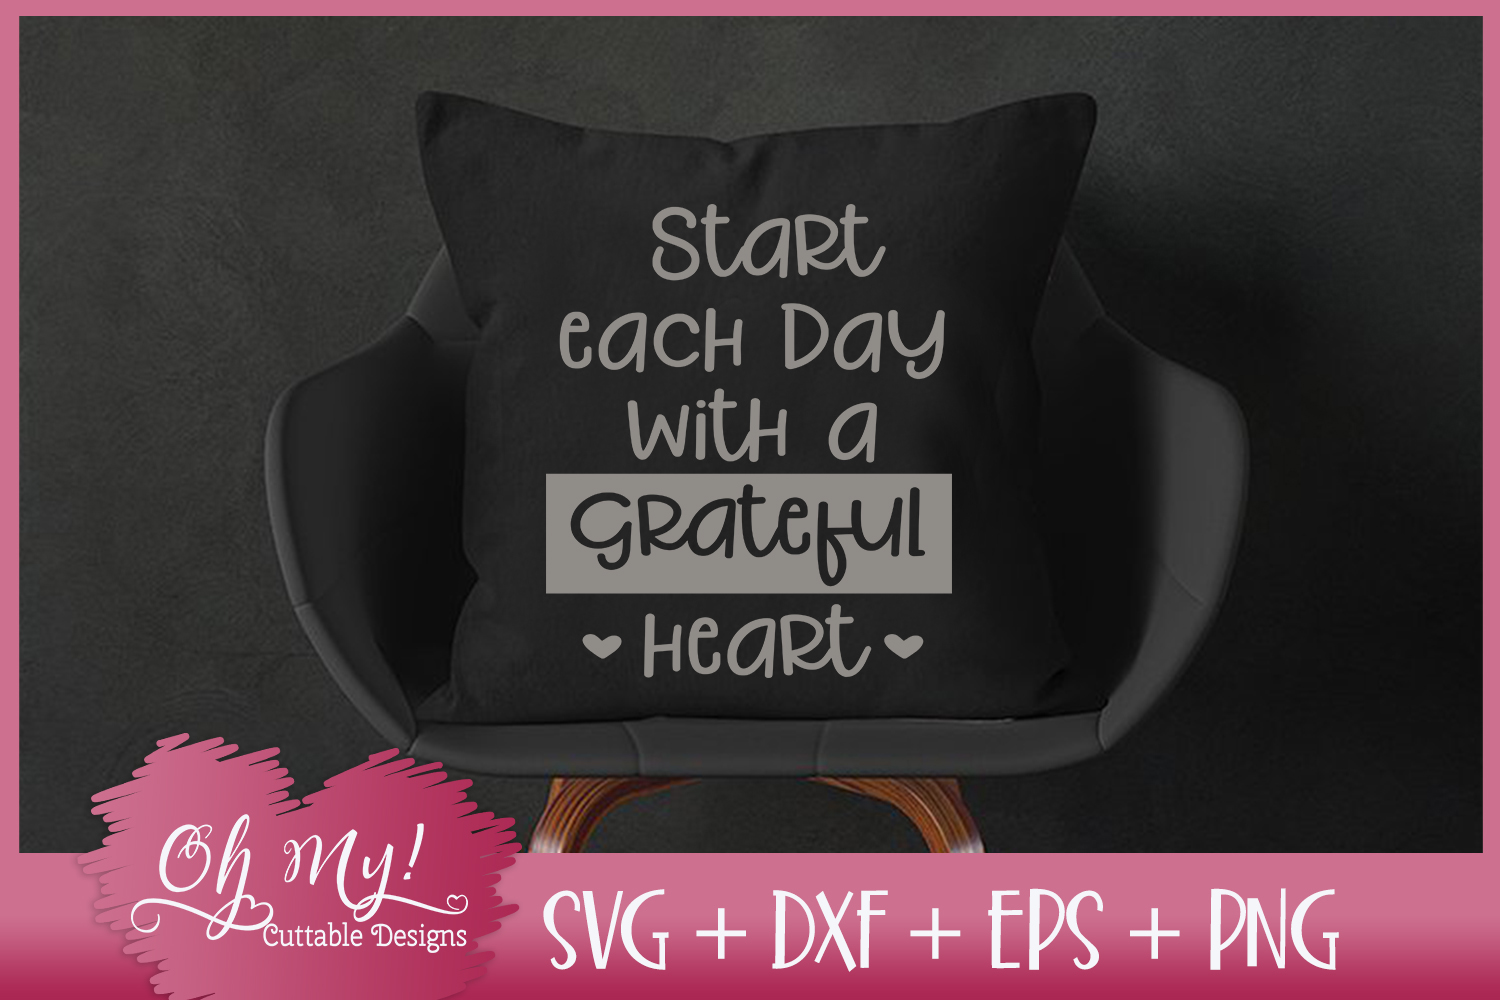 Start Each Day With A Grateful Heart - SVG DXF EPS PNG C example image 3